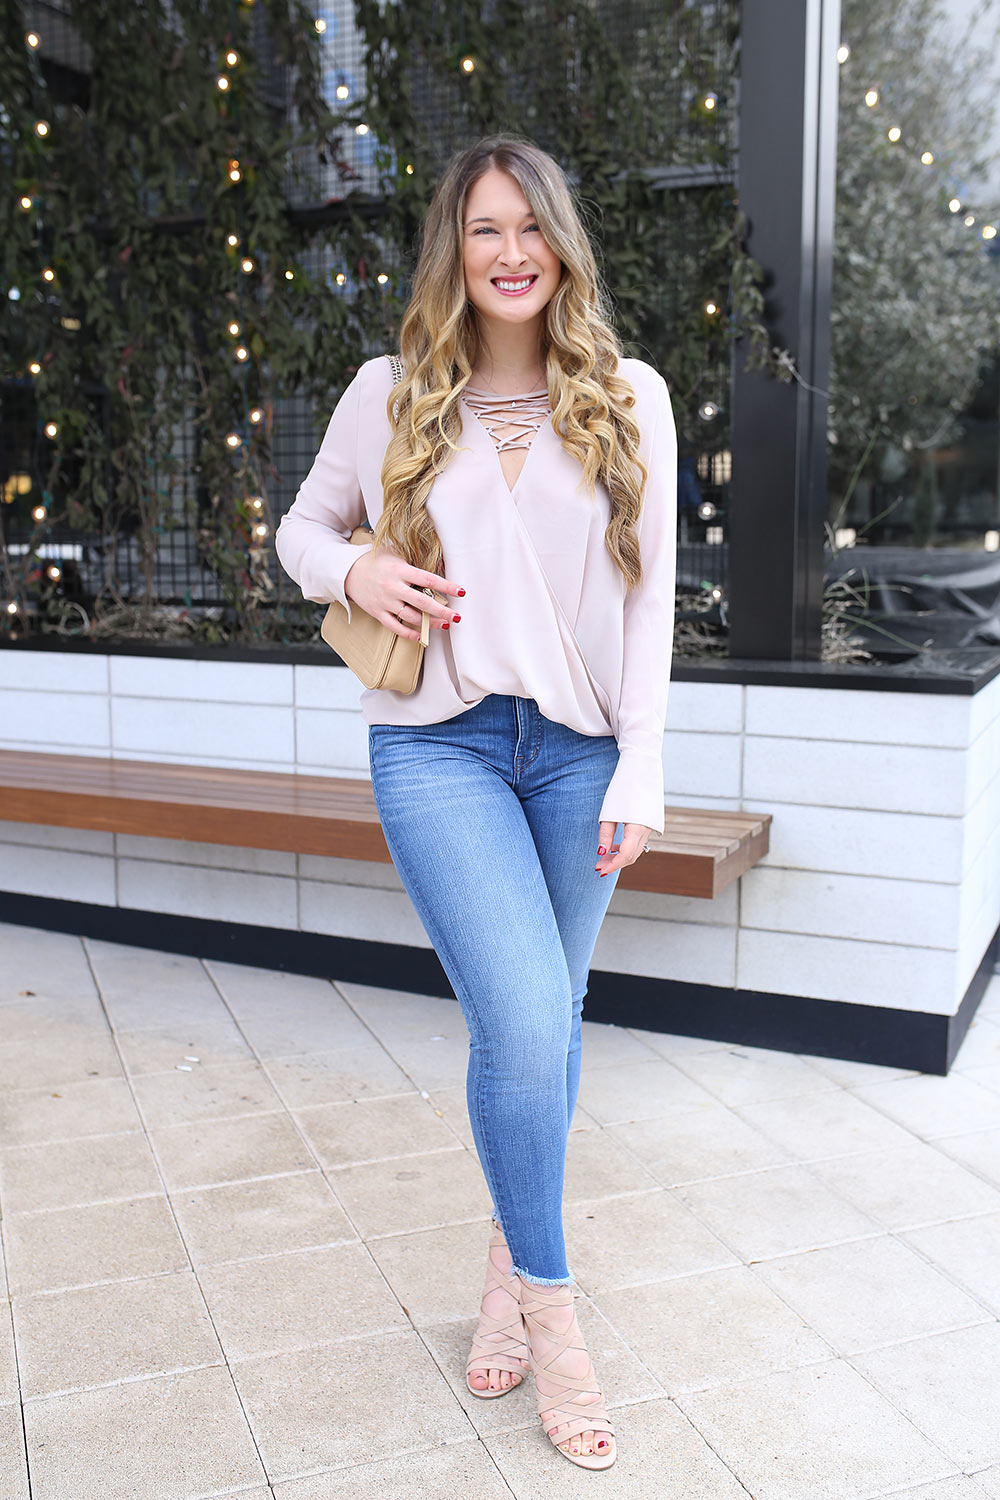 With the changing of the seasons comes the changing of our wardrobes from coats to light and breezy tops. So today, I want to provide some fashion inspiration by sharing nine tops that are PERFECT for the transition from winter to spring 2018. 9 Tops You Need to Transition from Winter to Spring 2018